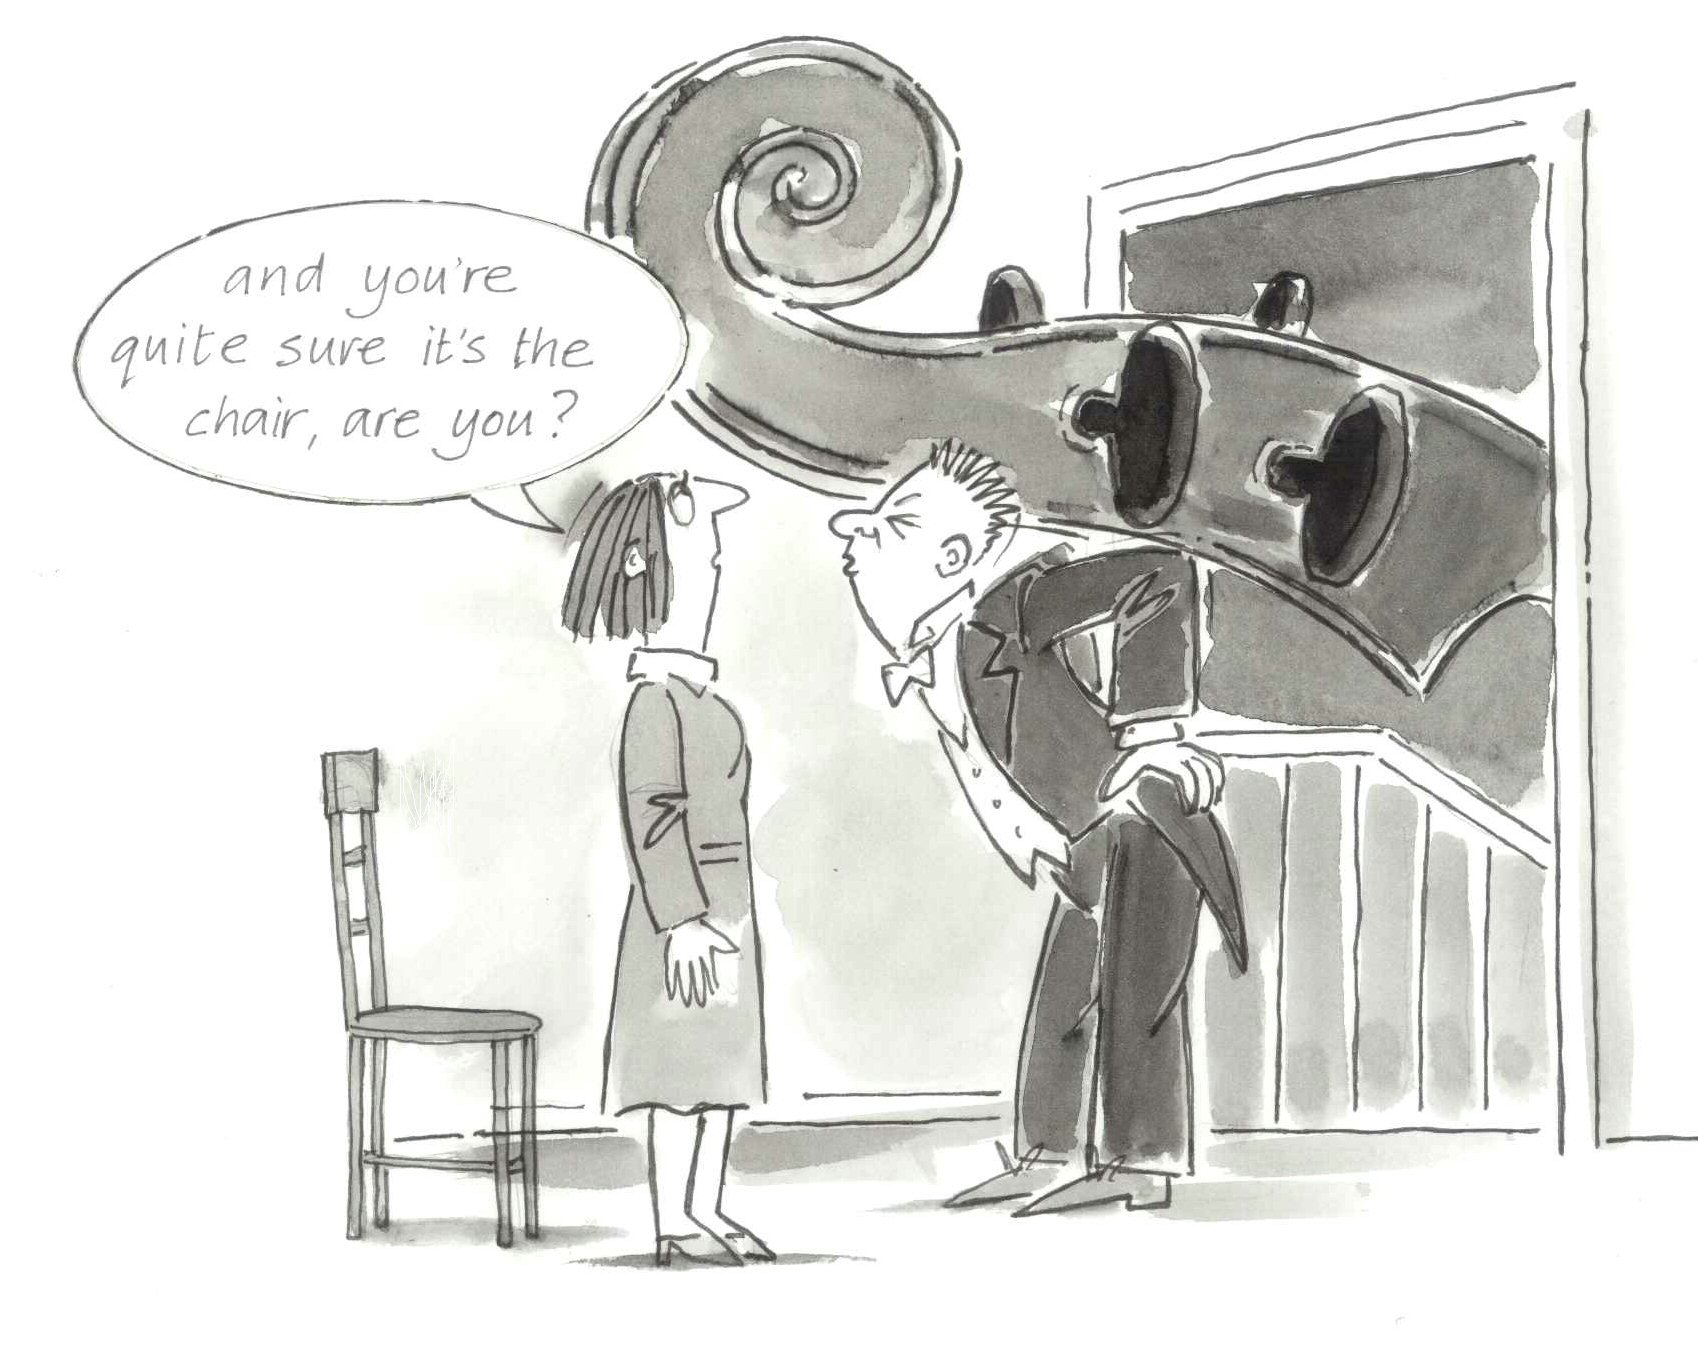 Cartoon of a man carrying a giant cello on his back